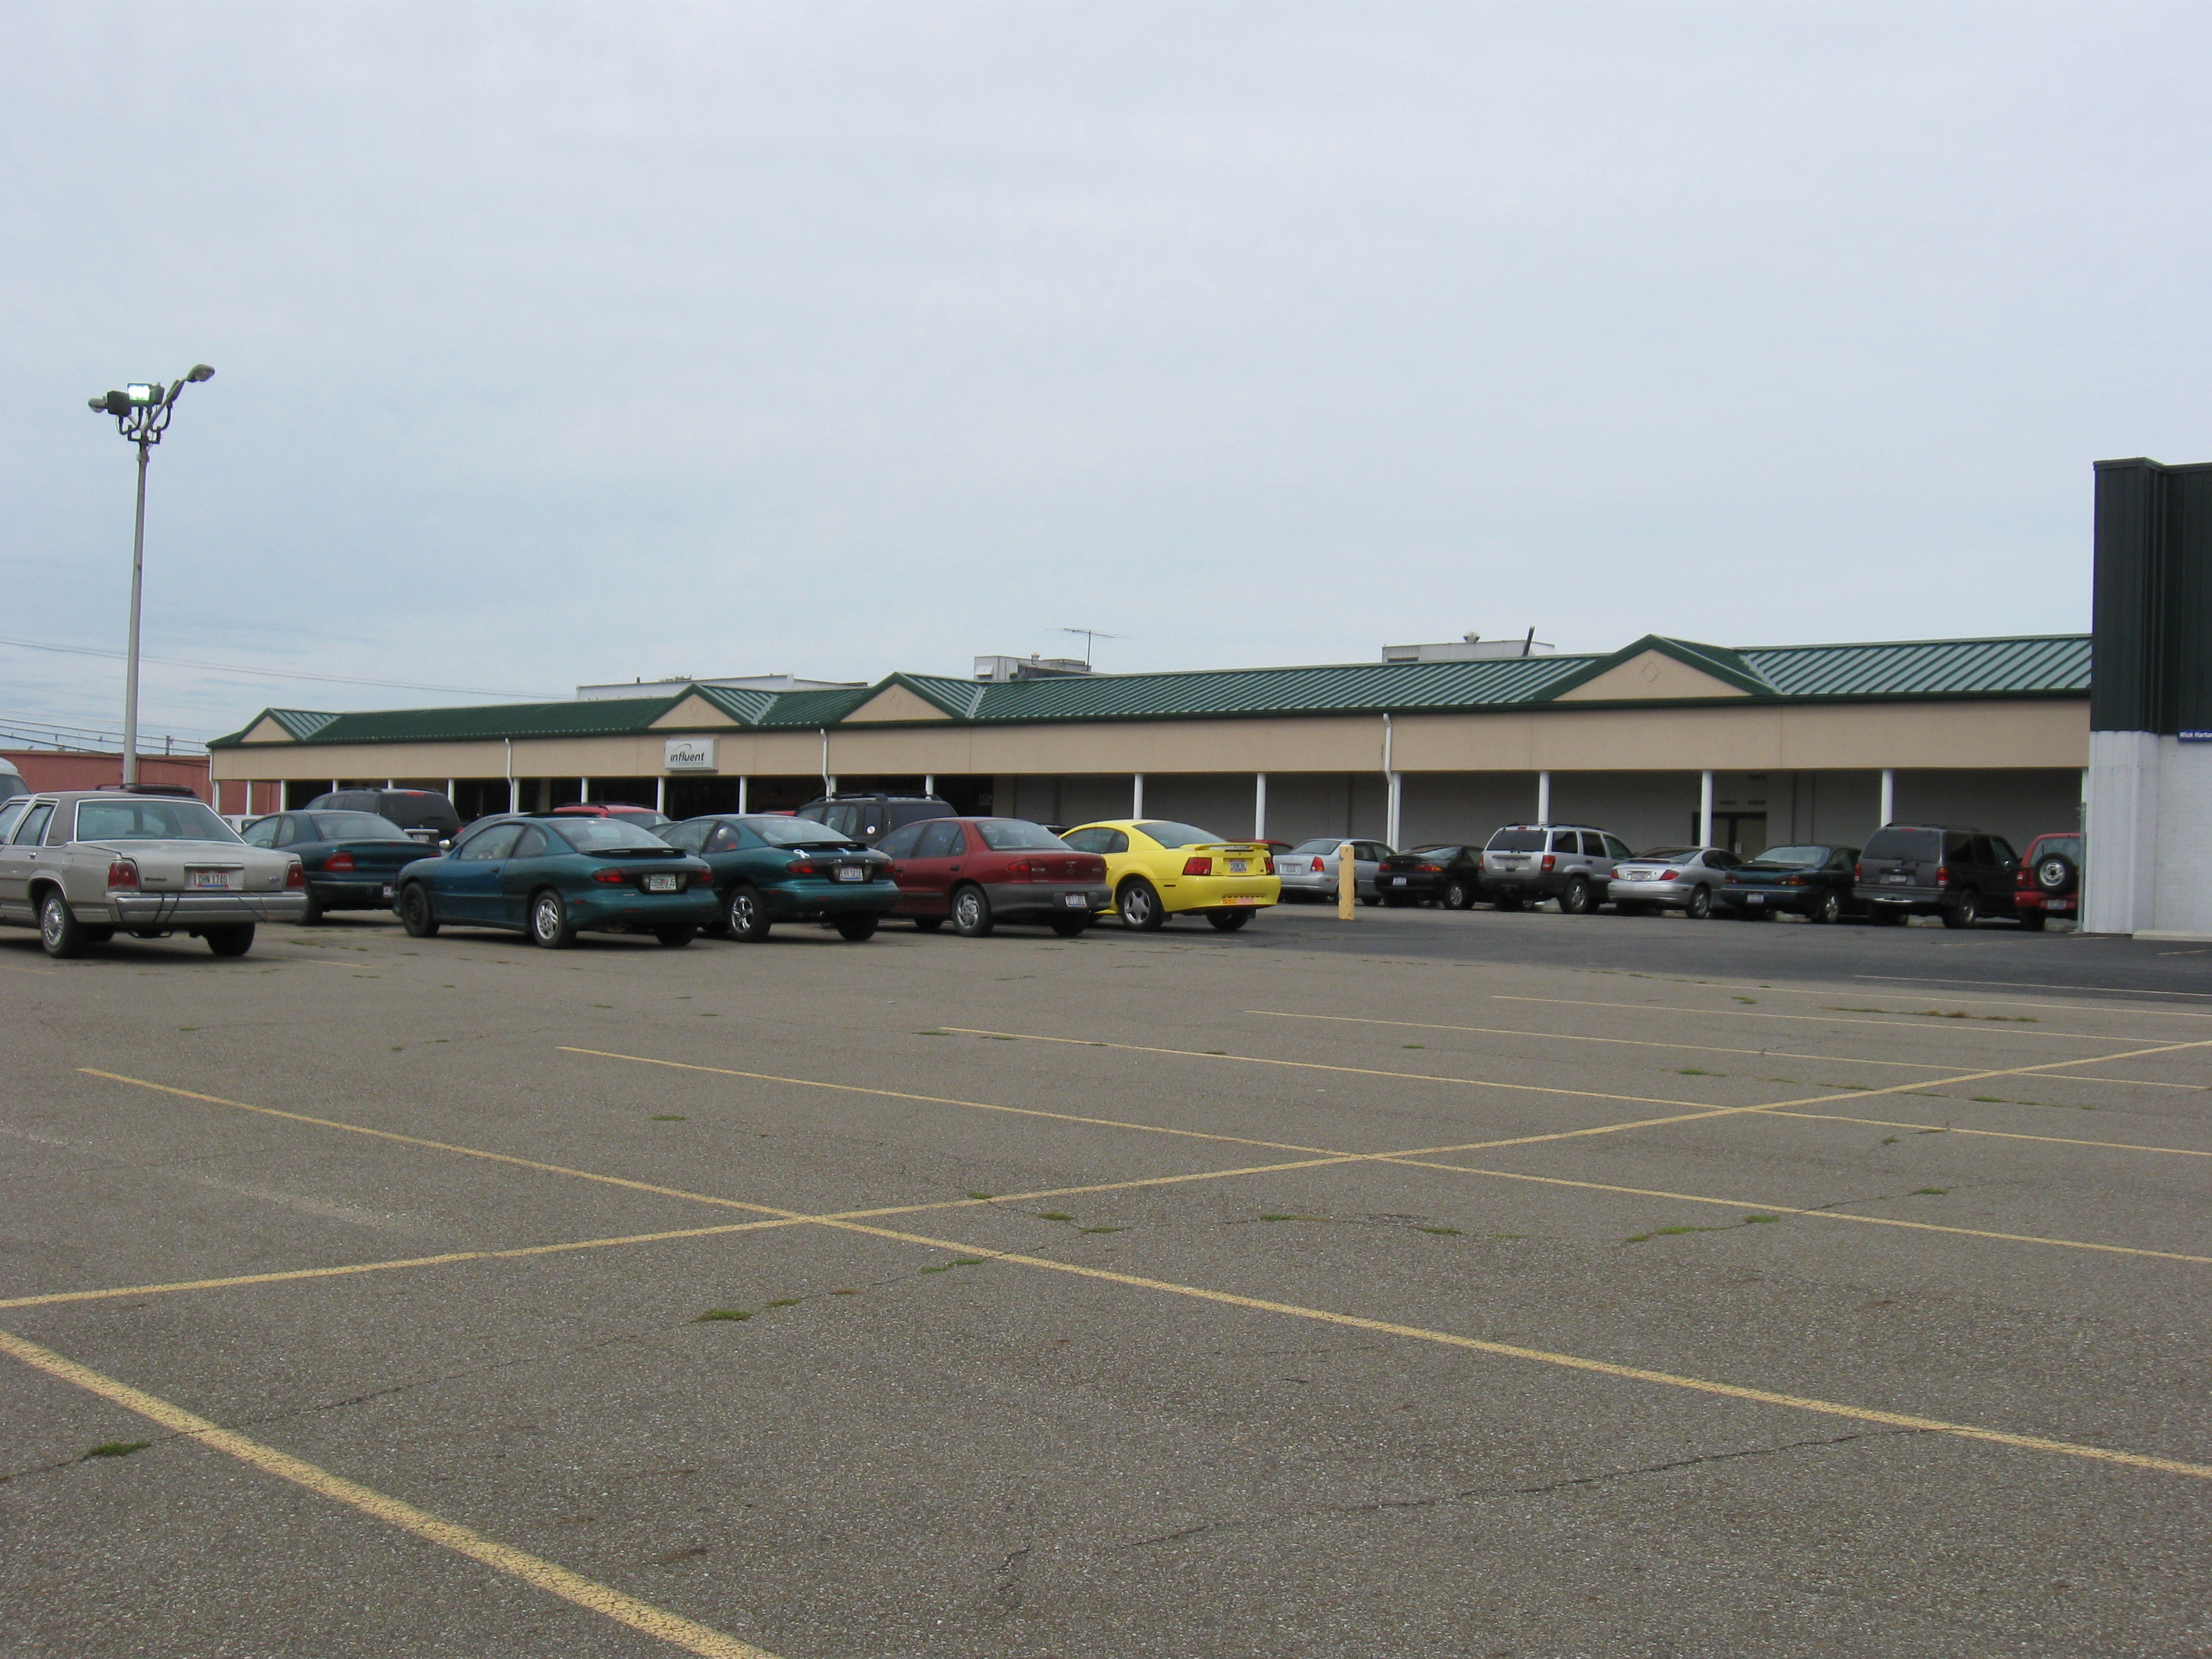 112,586 SQ.FT. SERVICE, OFFICE, ASSEMBLY & DISTRIBUTION